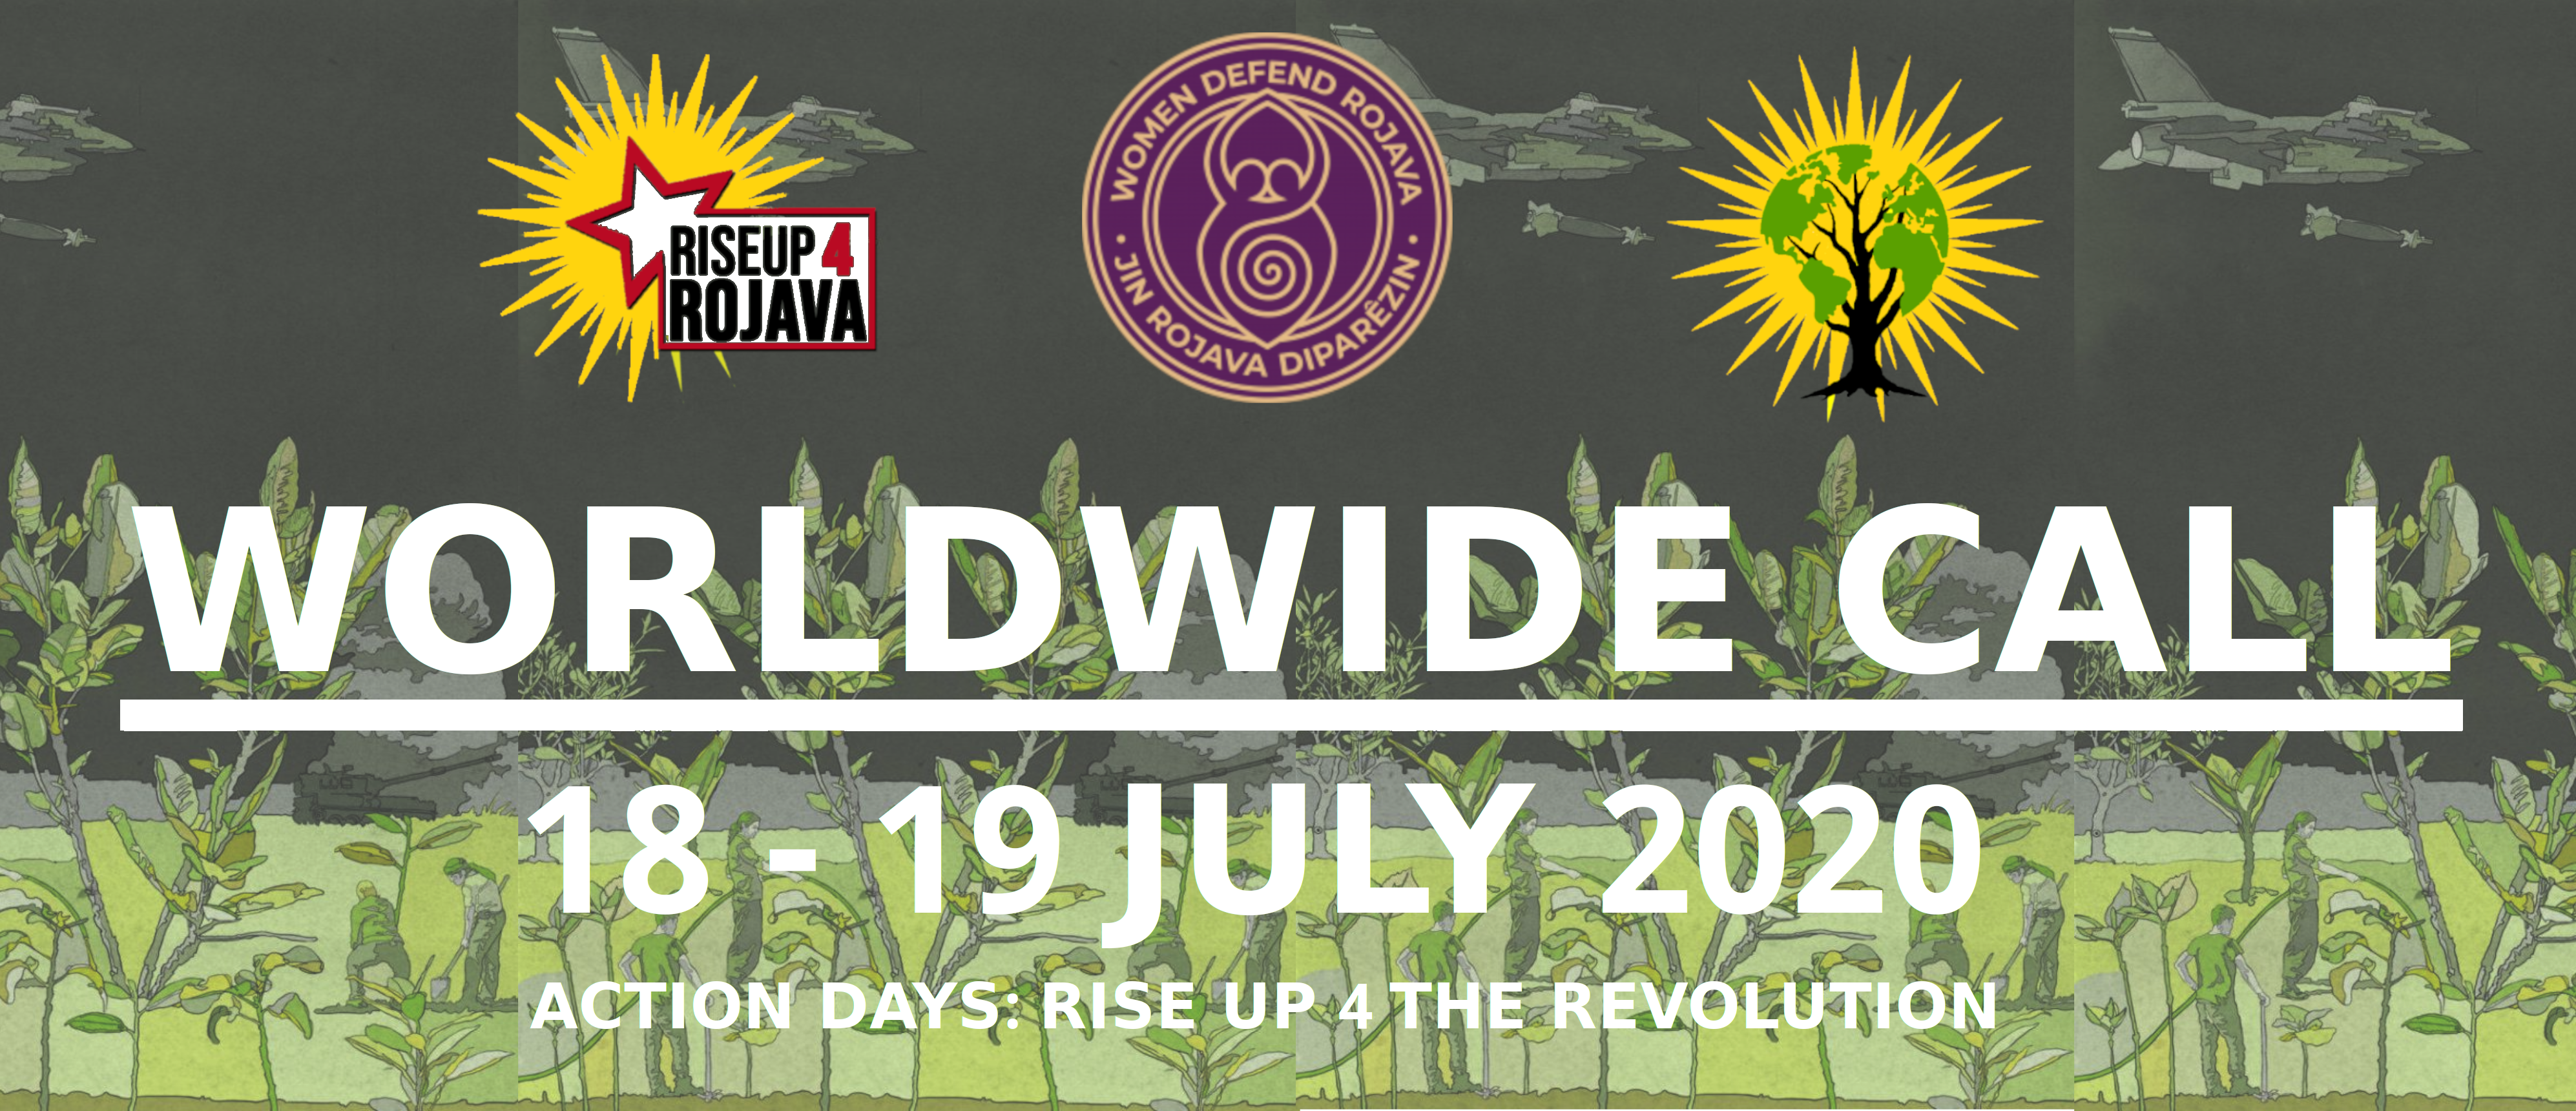 Make Rojava Green Again Call for Action Days on the 18th and 19th July